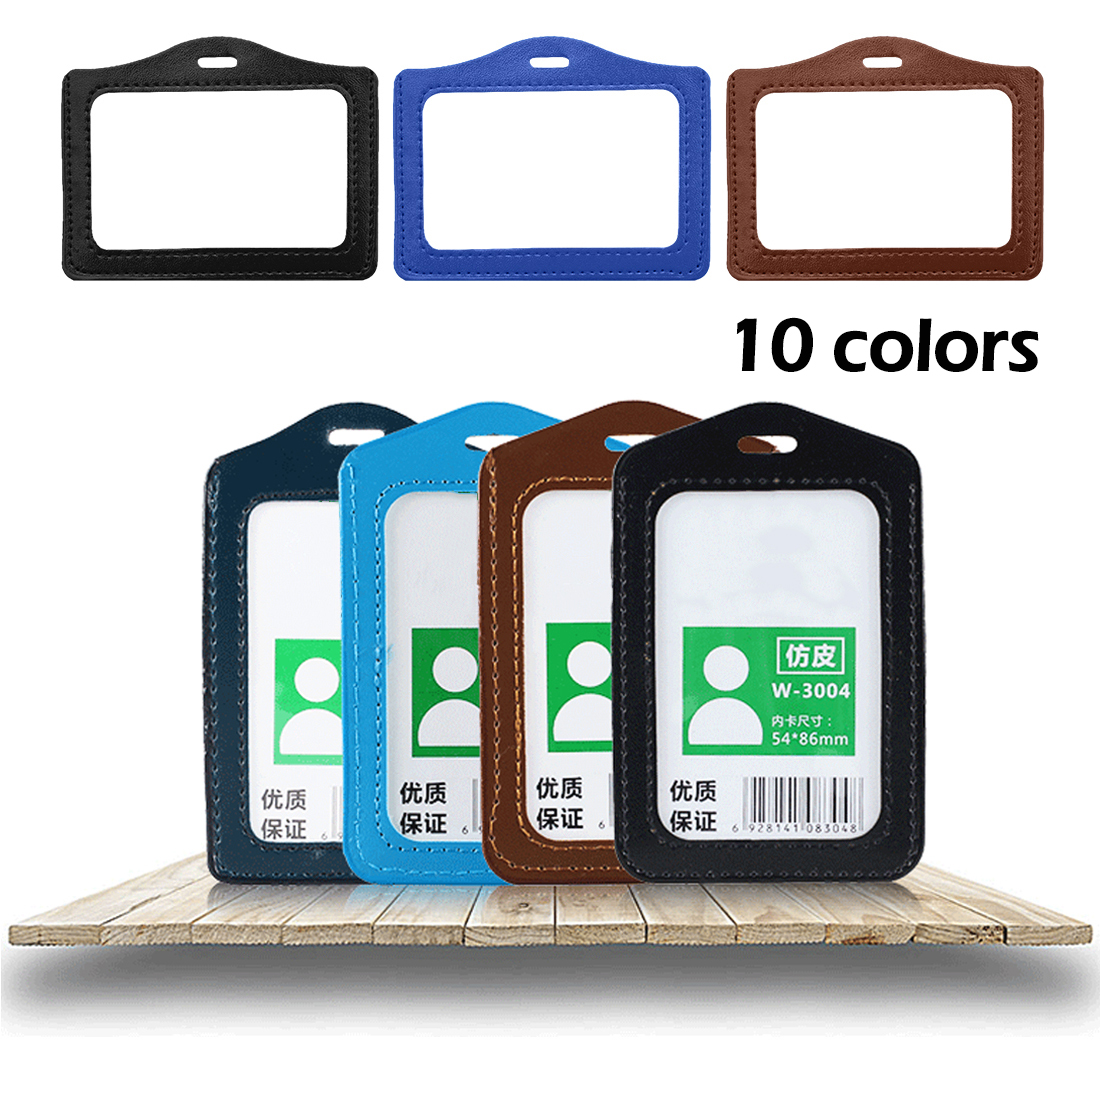 ID Badge Case PU Leather Credit Card Case Bank Credit Card Holders ID Badge Holders Clear And Color Border Lanyard Holes